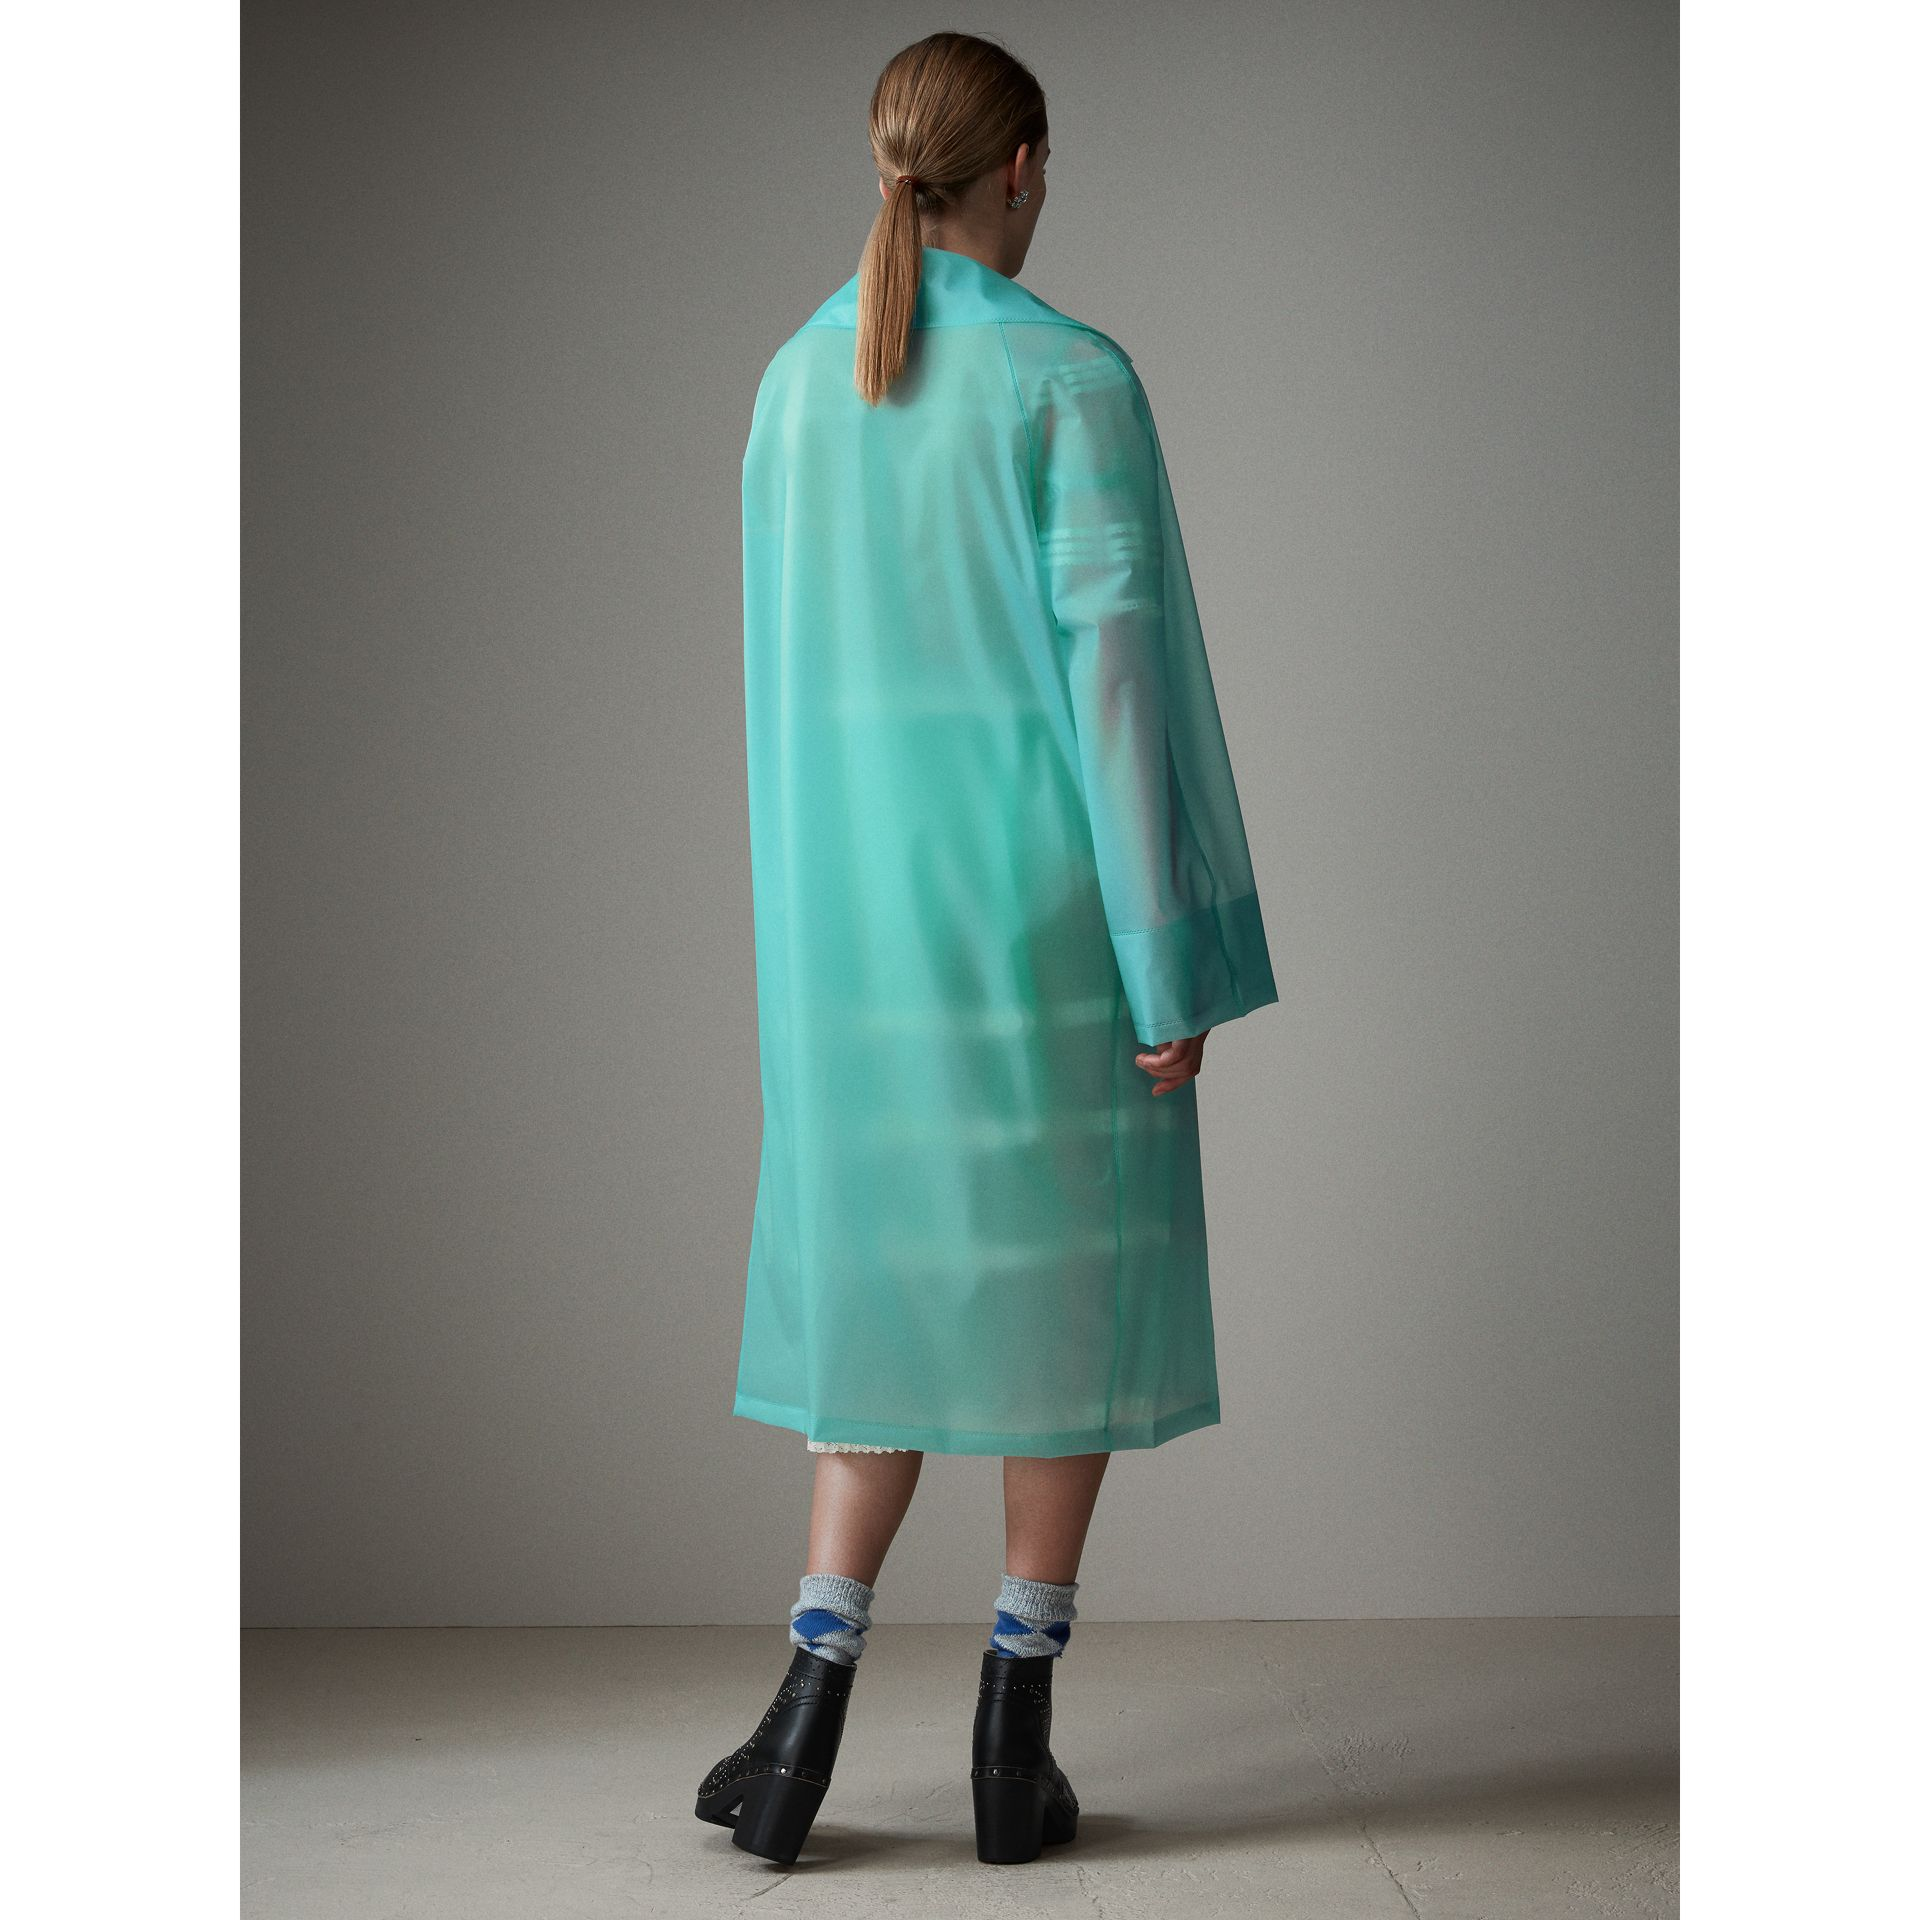 Soft-touch Plastic Car Coat in Turquoise - Women | Burberry - gallery image 3